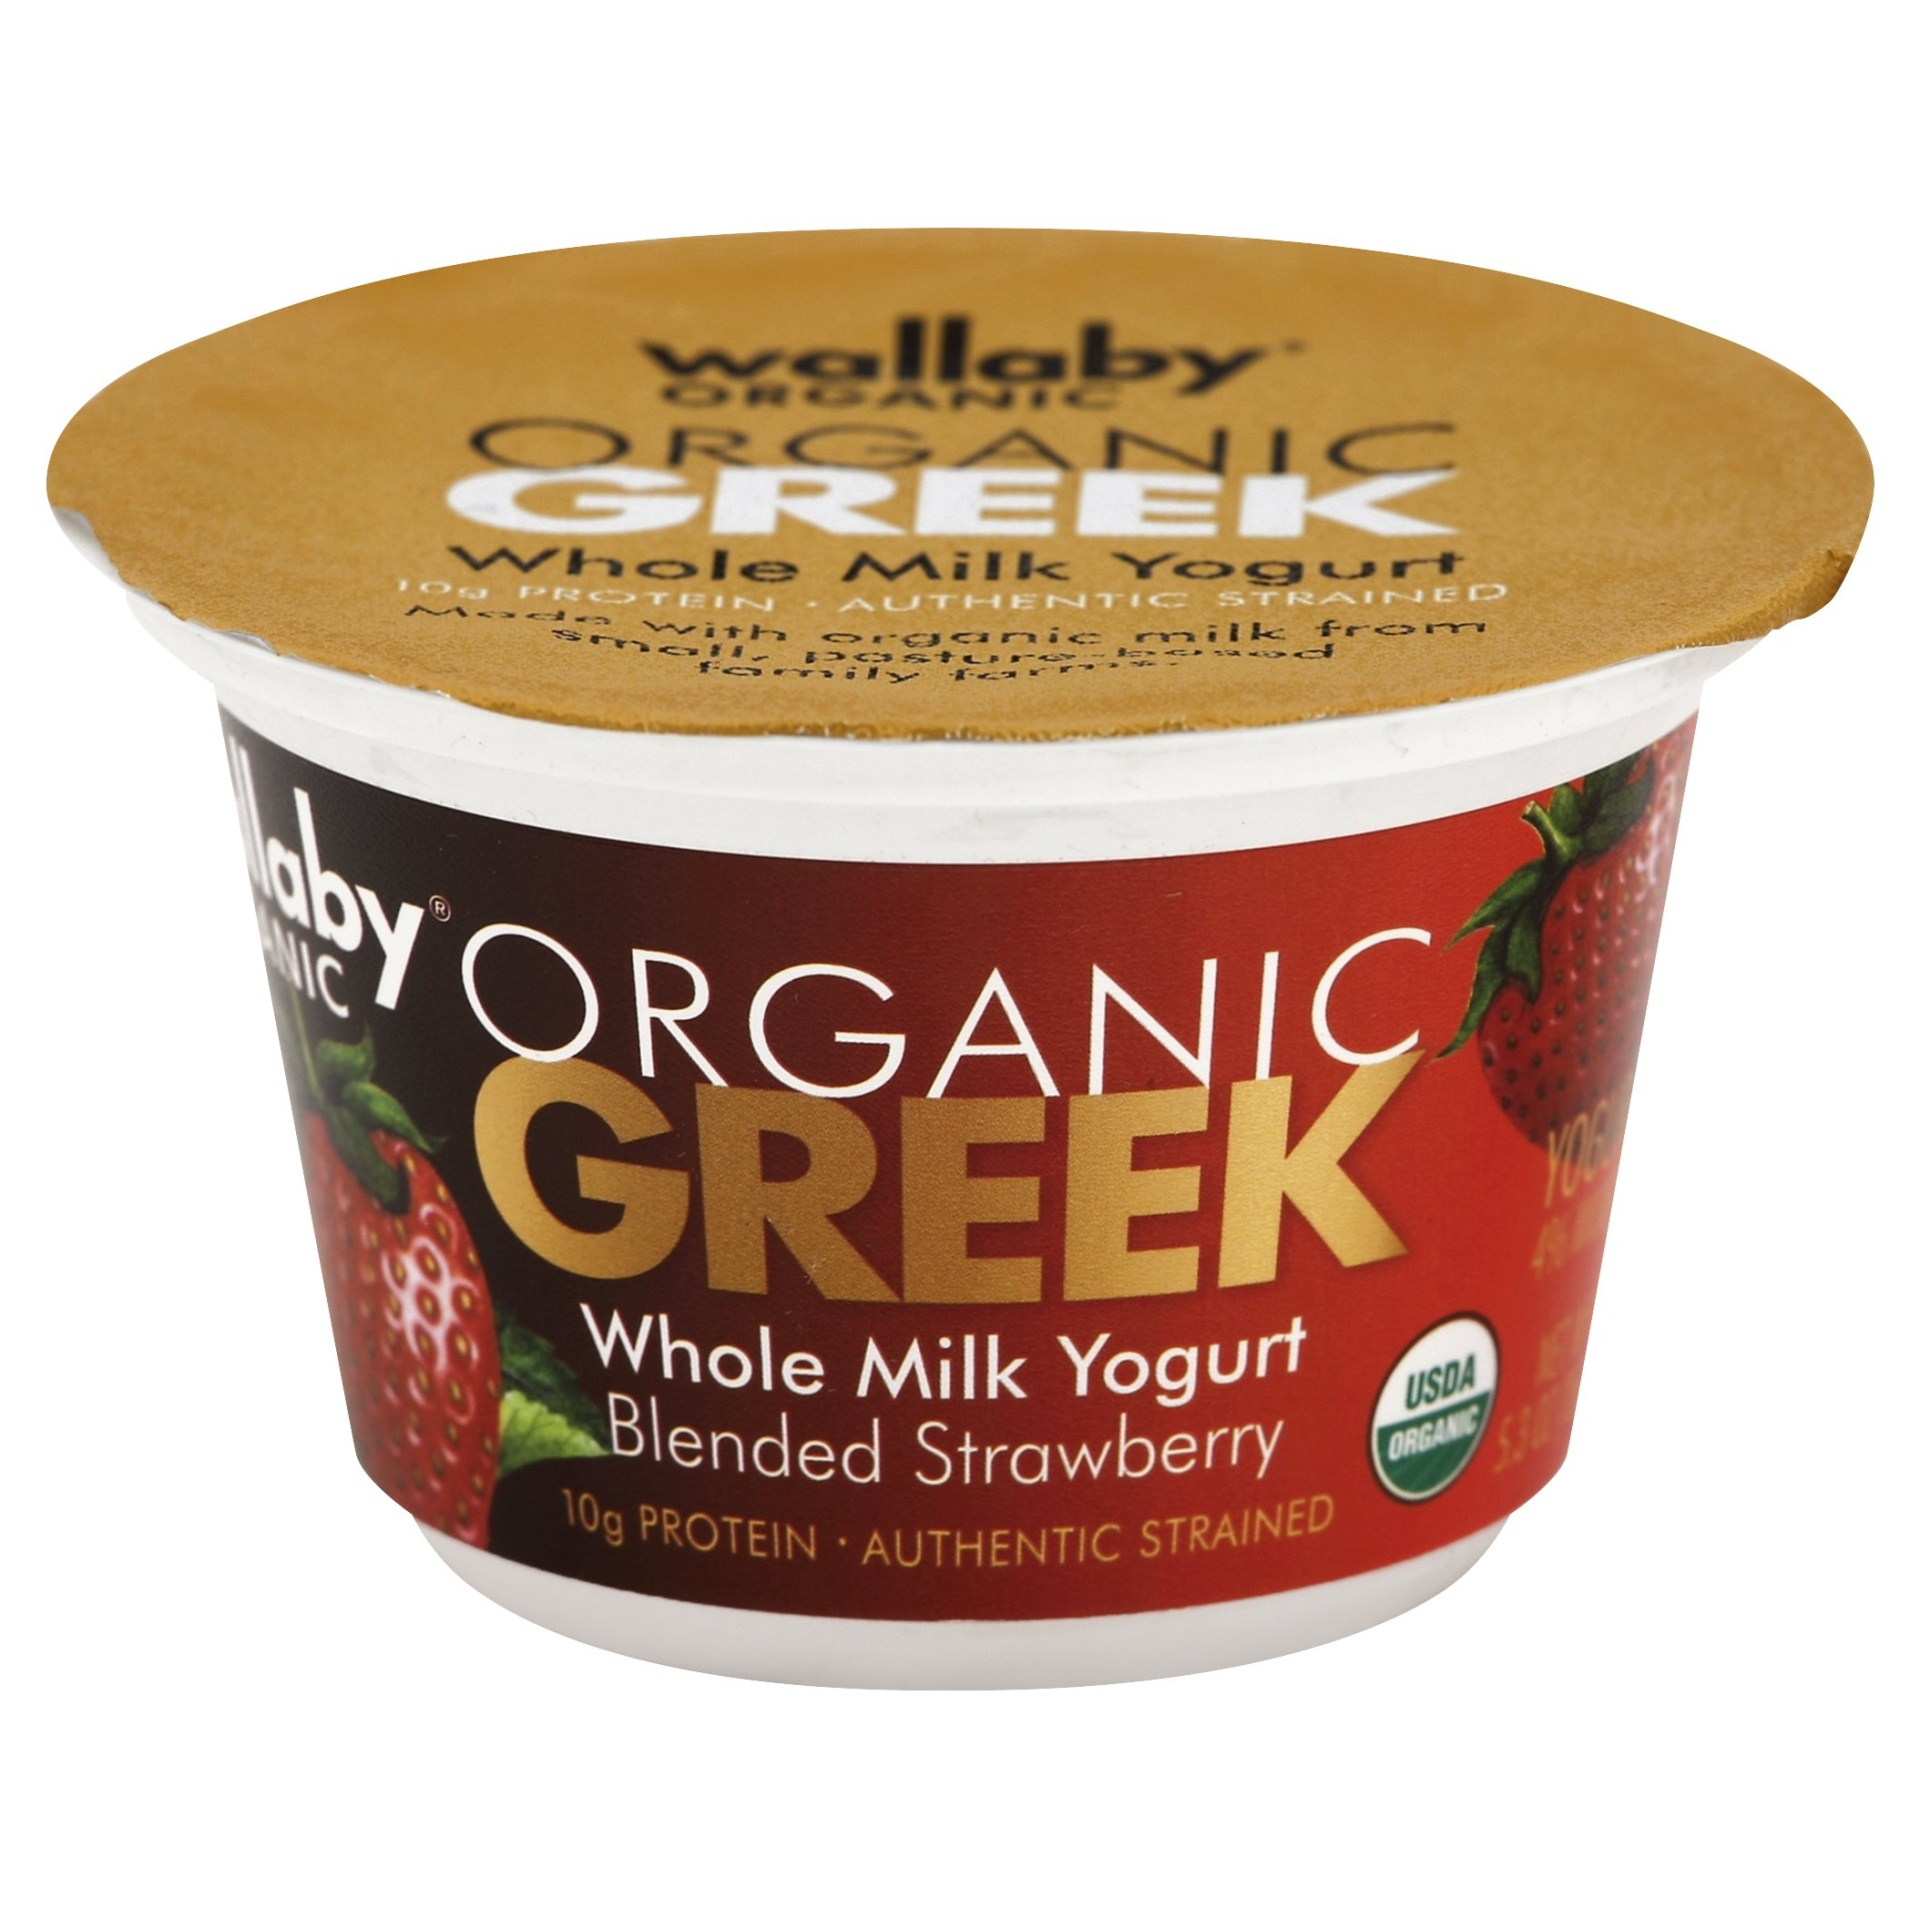 slide 1 of 5, Wallaby Organic Greek Blended Strawberry Whole Milk Yogurt,